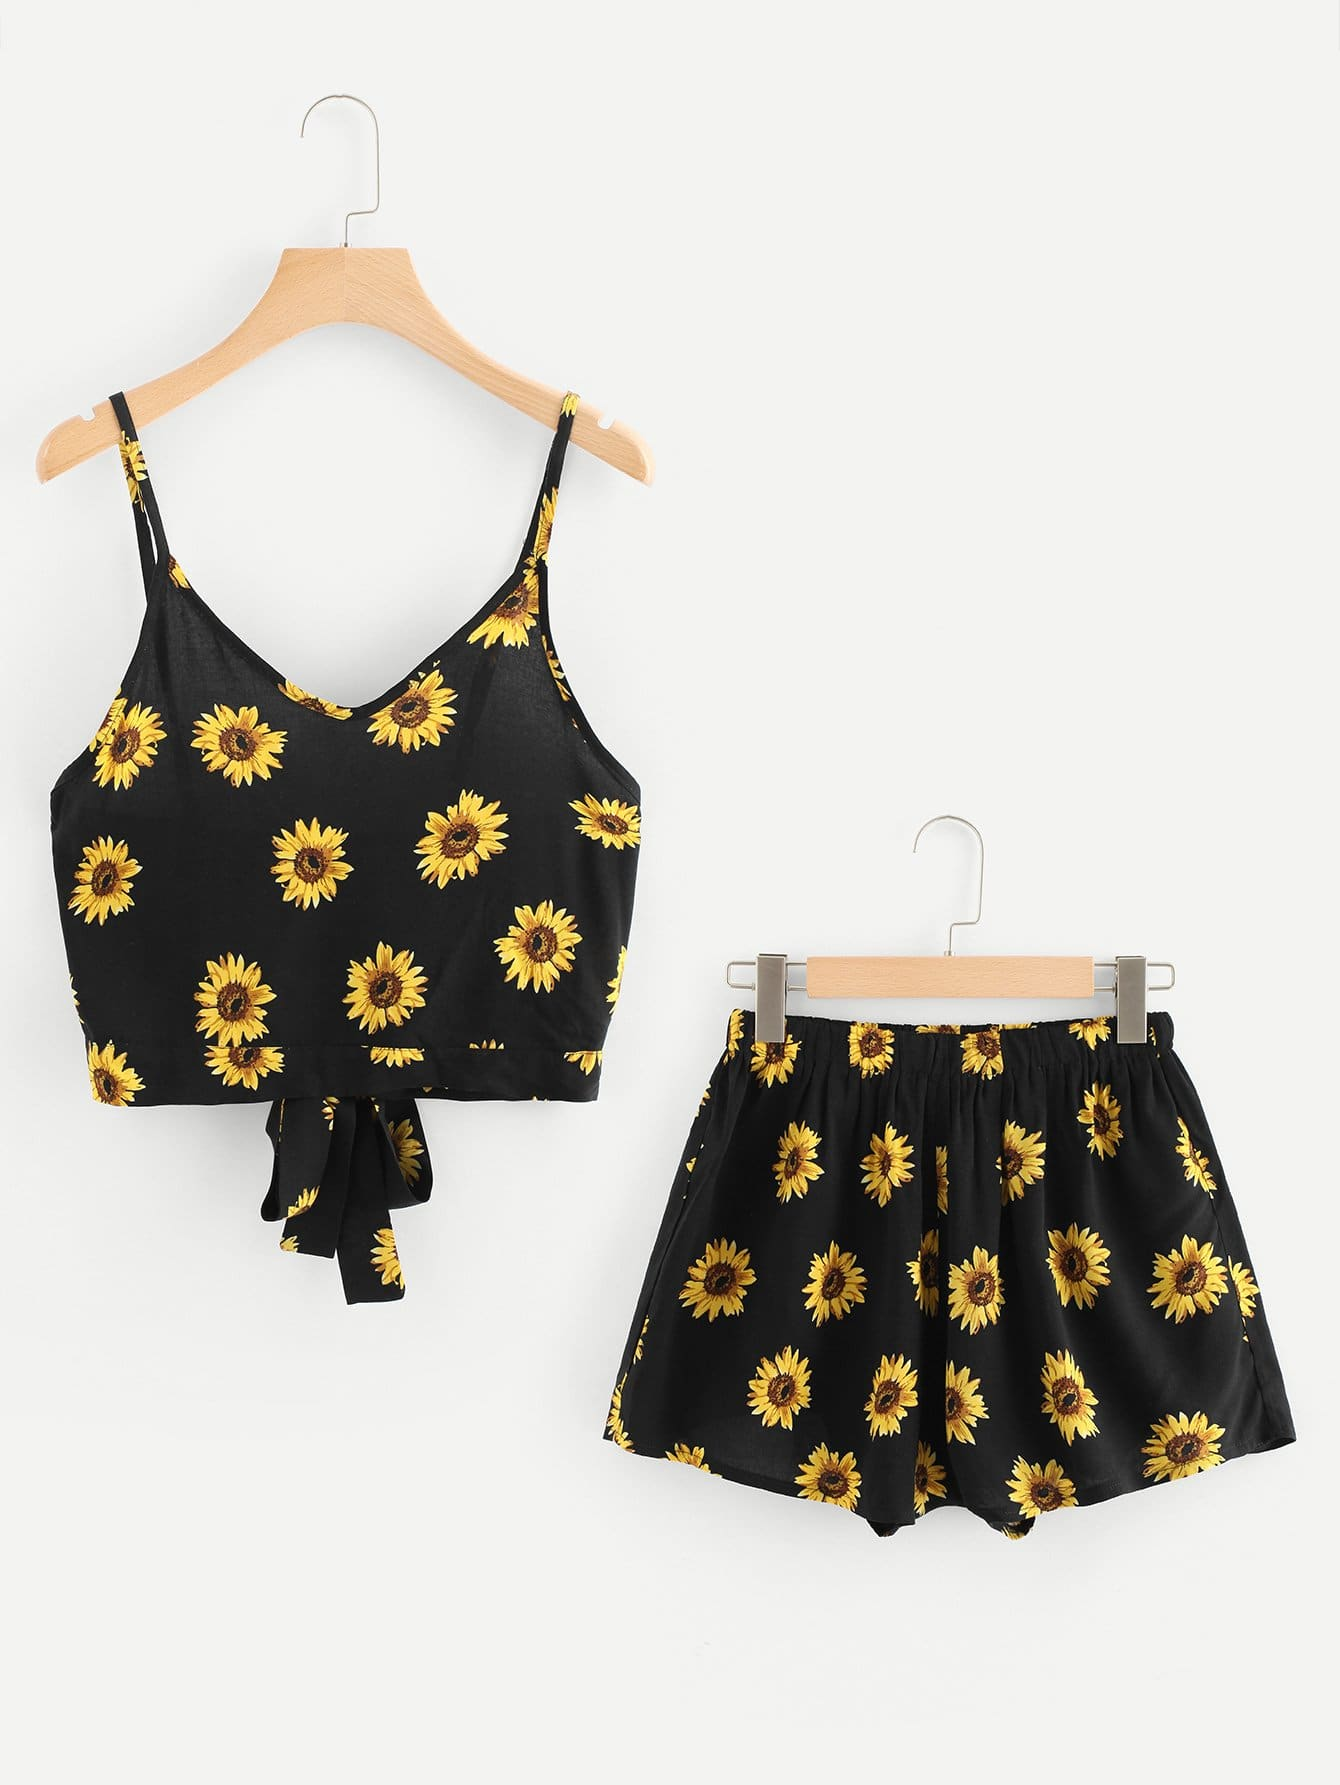 Tie Back Sunflower Print Cami Top With Shorts random sunflower print crisscross back a line cami dress